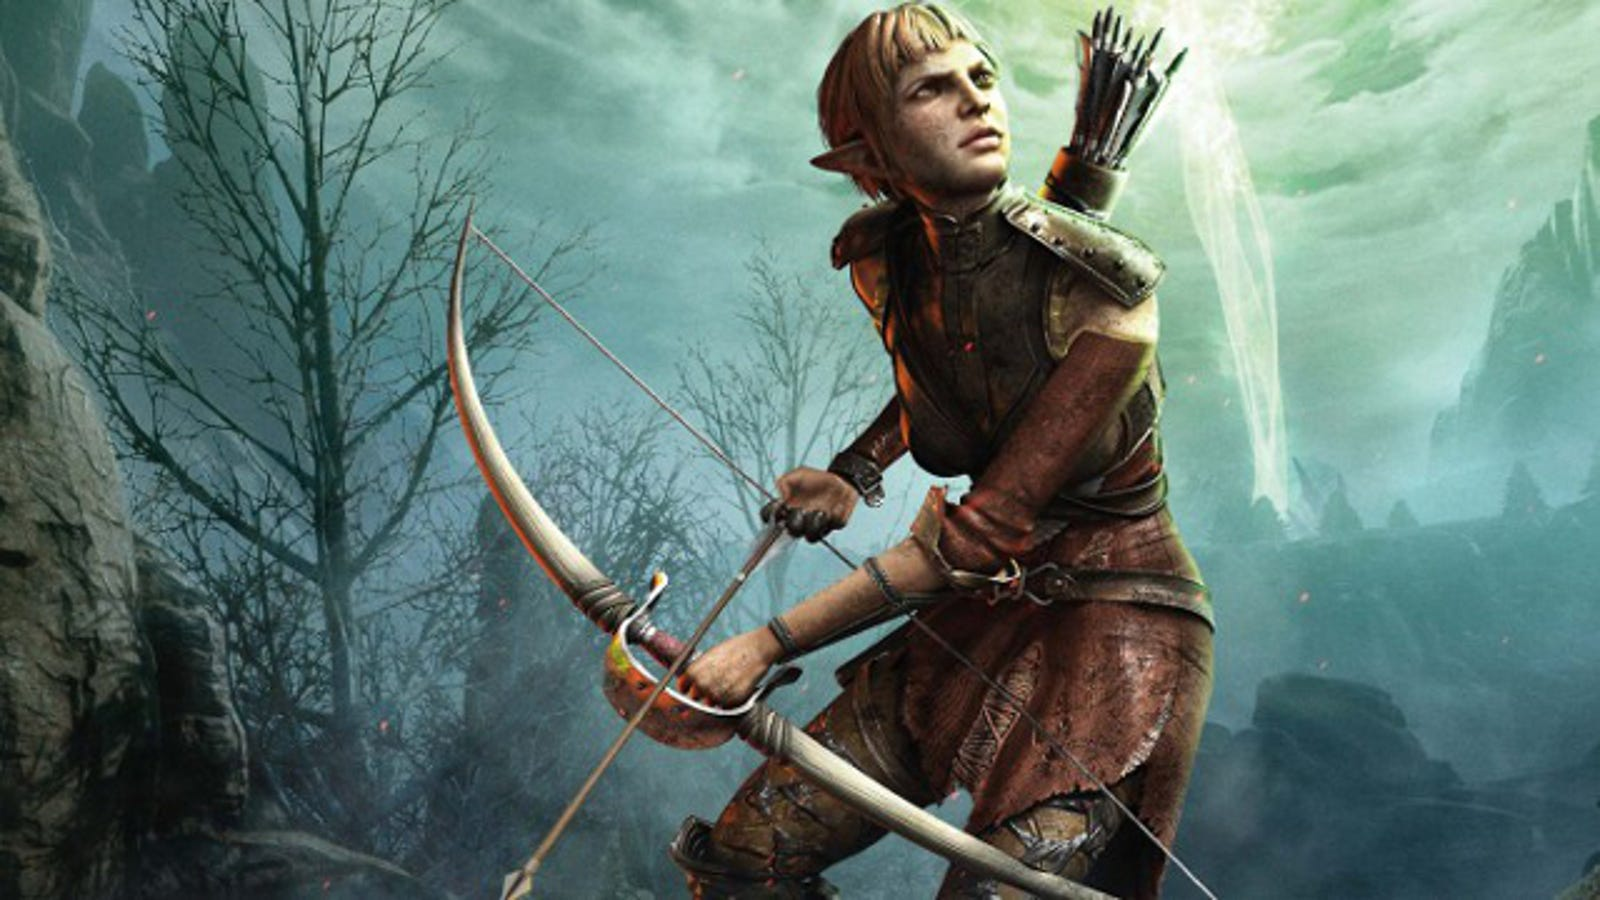 Months Later, Dragon Age's PC Version Is Still Frustrating